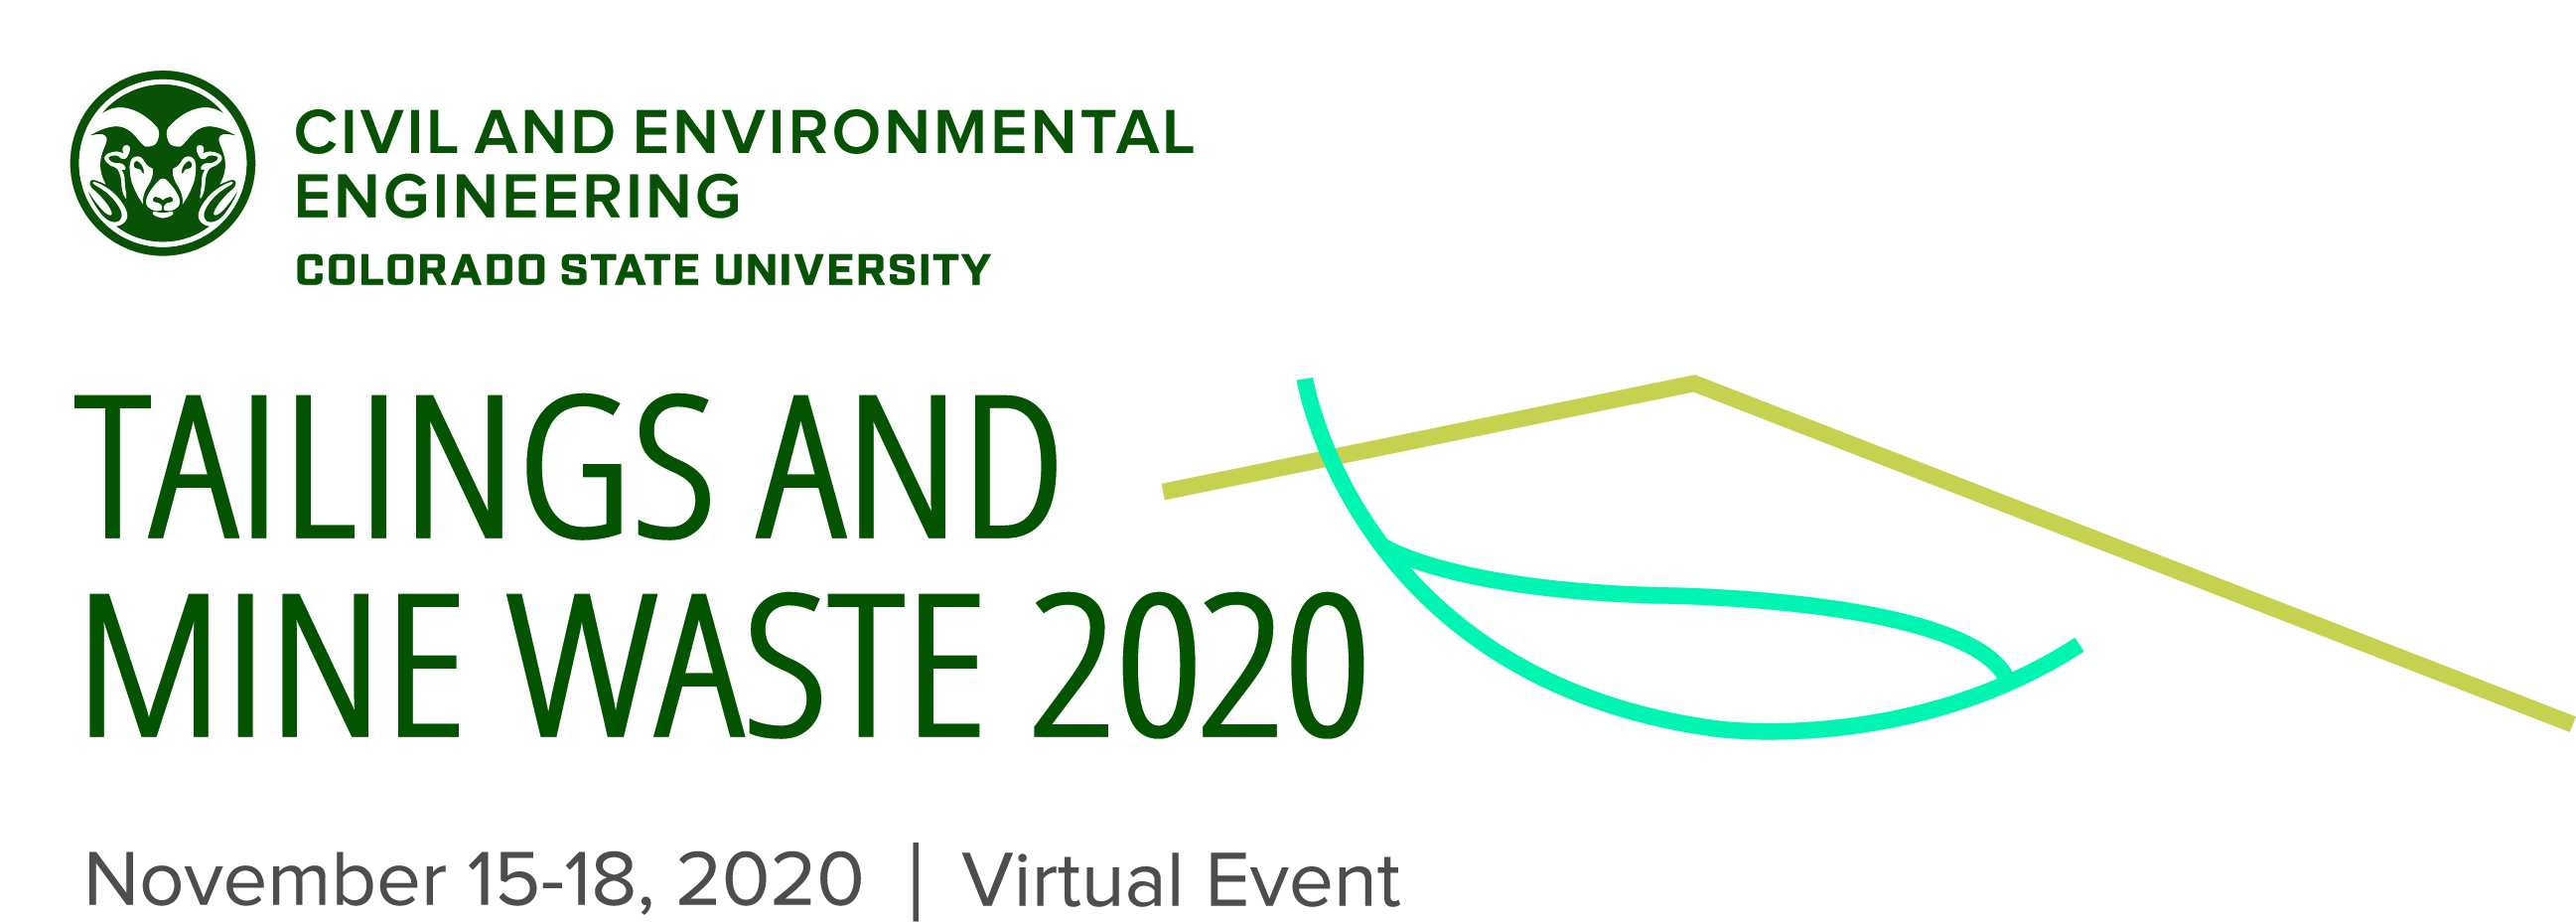 Tailings and Mine Waste 2020 Conference Series